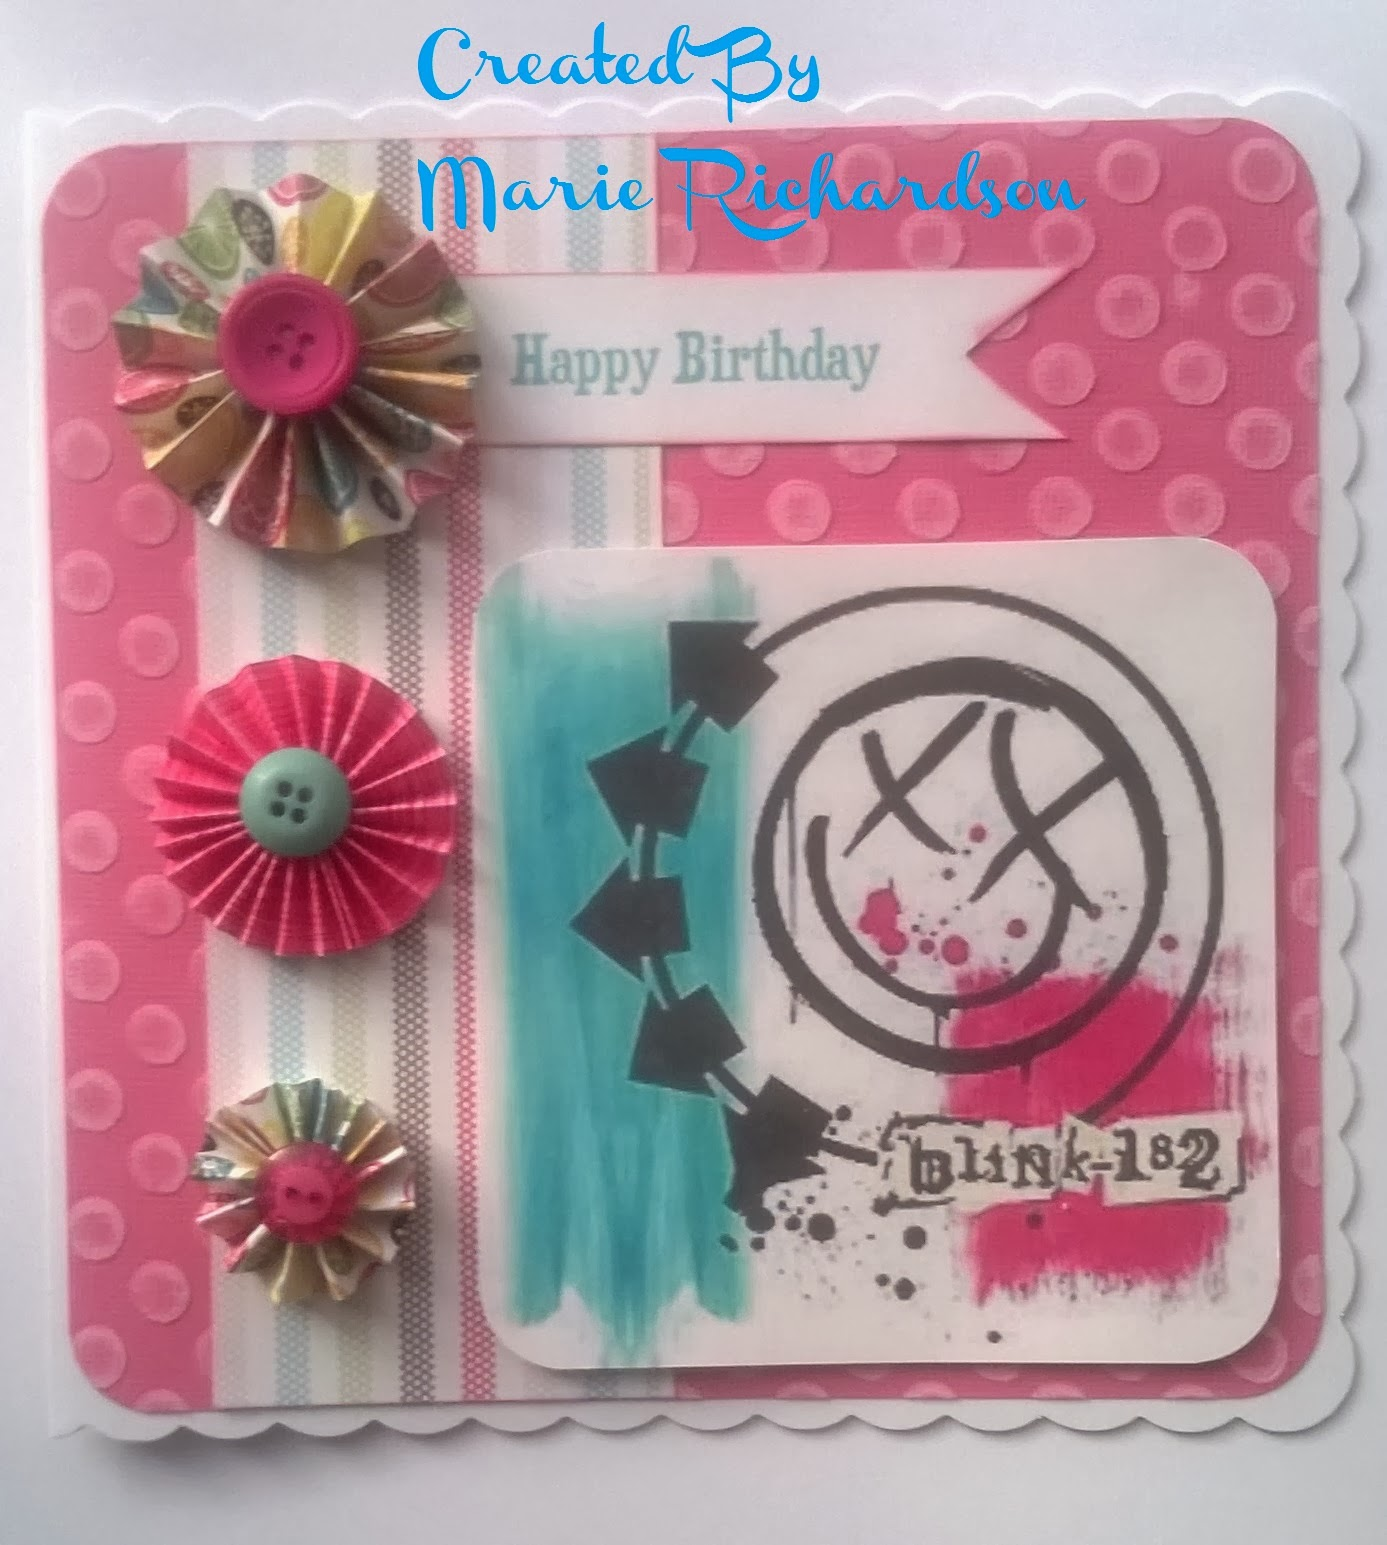 Simply me blink 182 birthday card deciding what card design to do for her i also wanted to make it a bit girly but not use flowers so i decided on using pinwheels which i made myself bookmarktalkfo Image collections